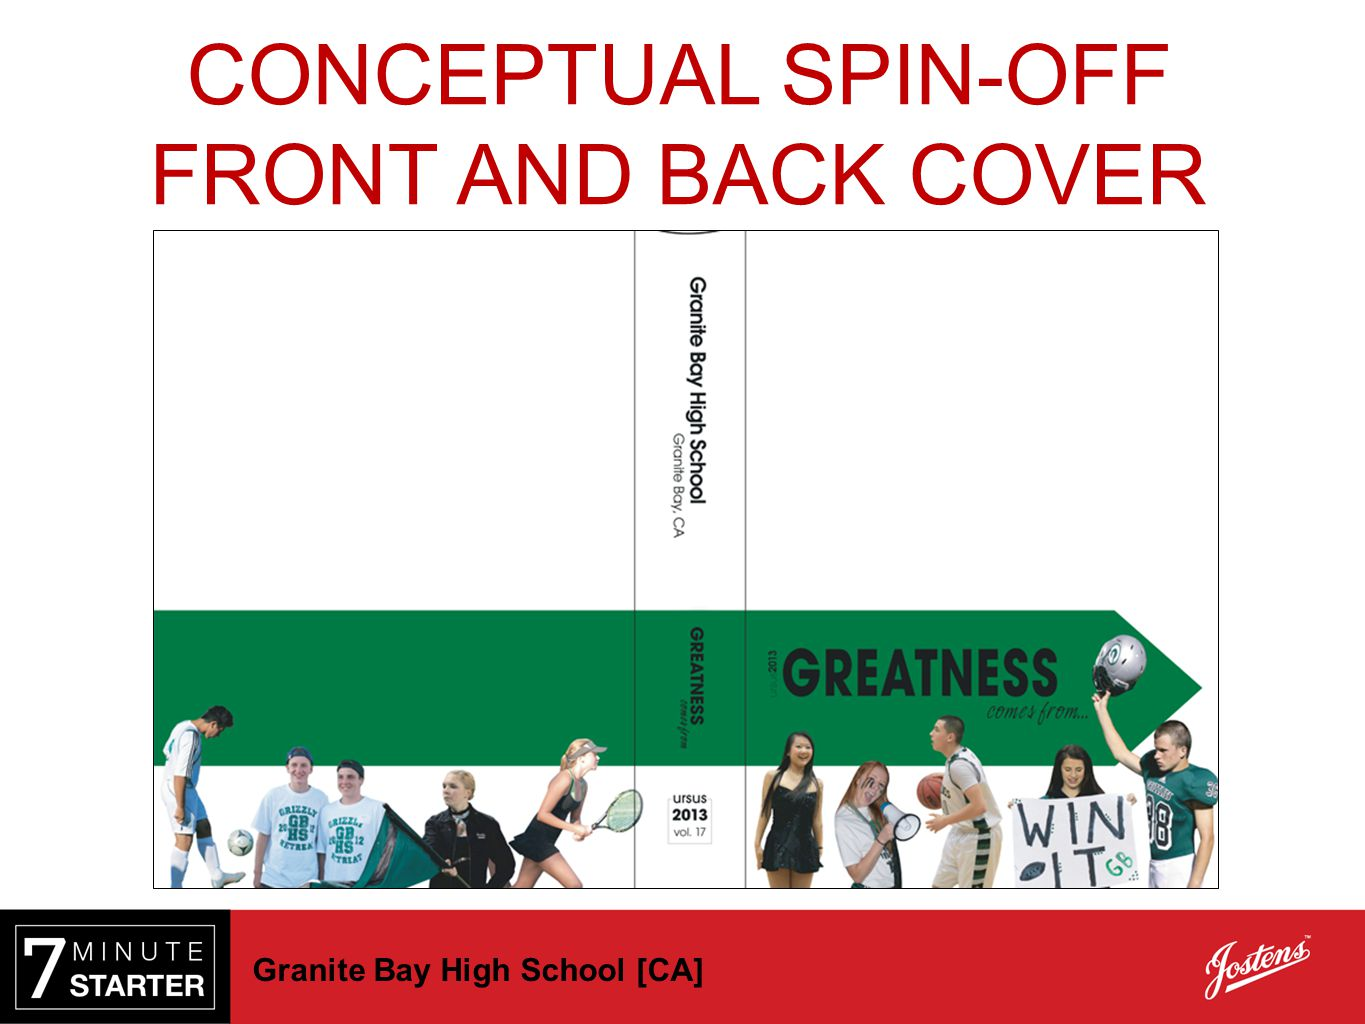 CONCEPTUAL SPIN-OFF STEP 2 - PRACTICE FRONT AND BACK COVER First